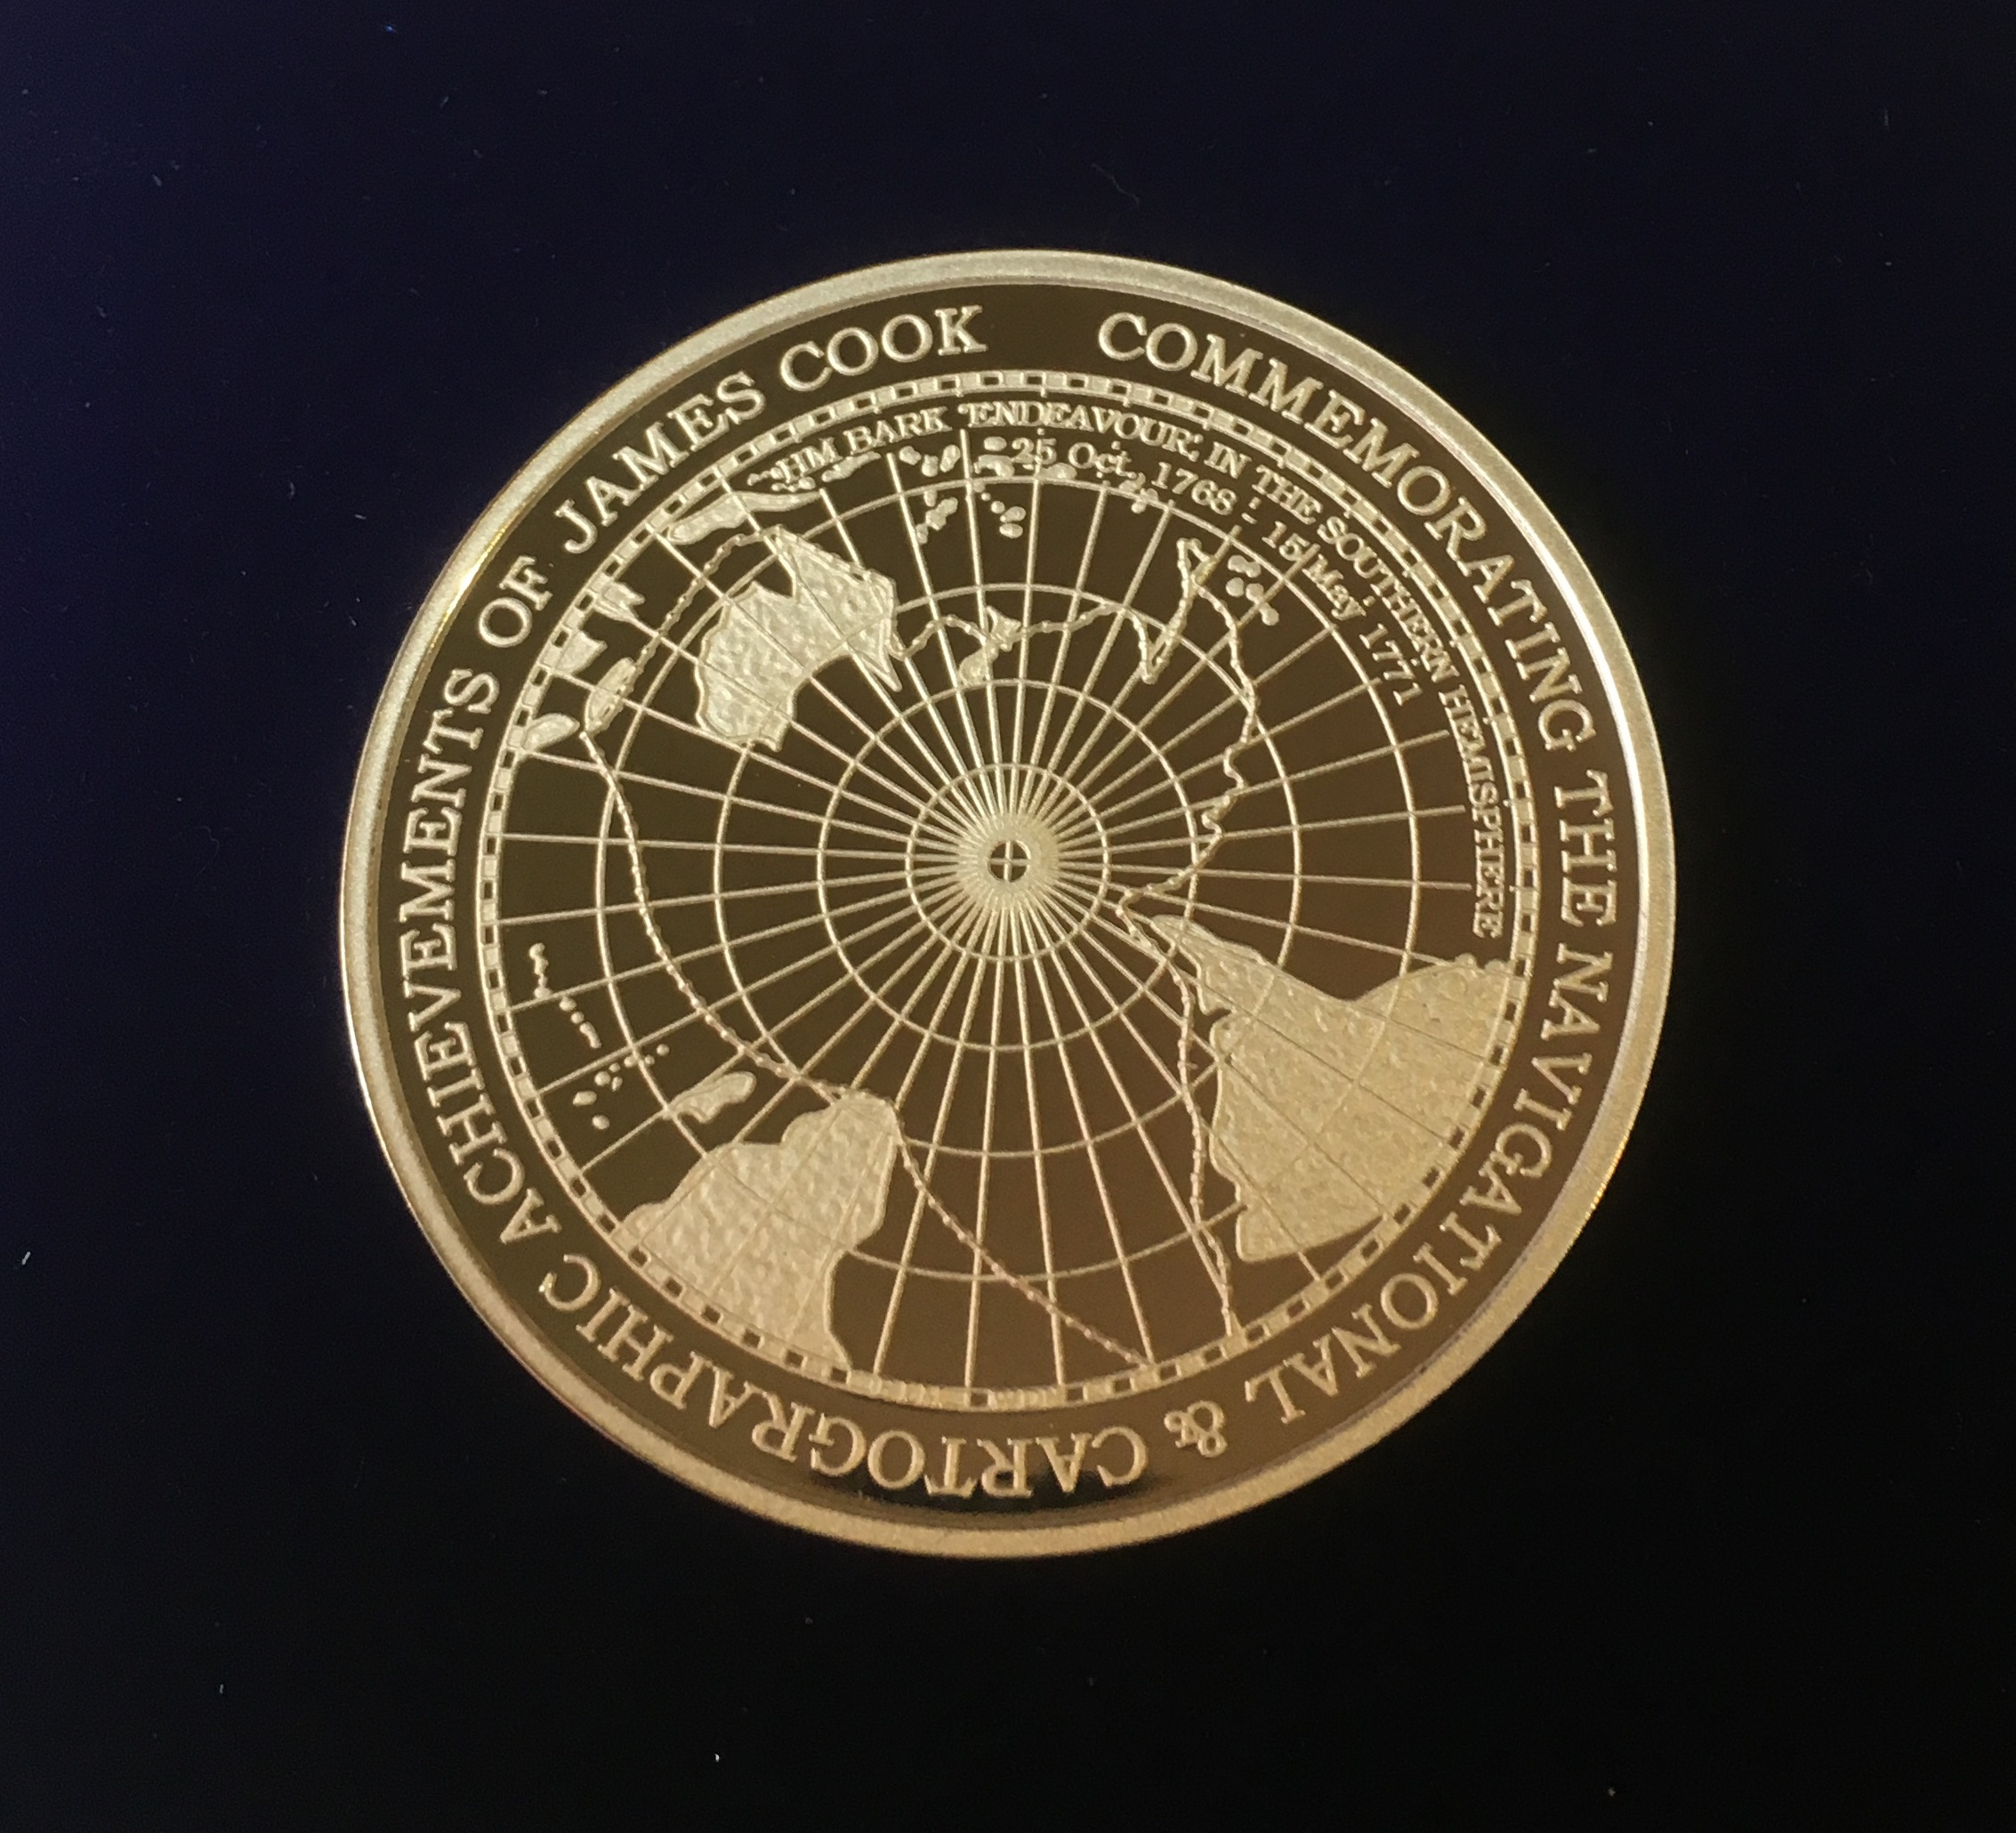 The medal reverse shows course of James Cook and the 'Endeavour' in the southern hemisphere